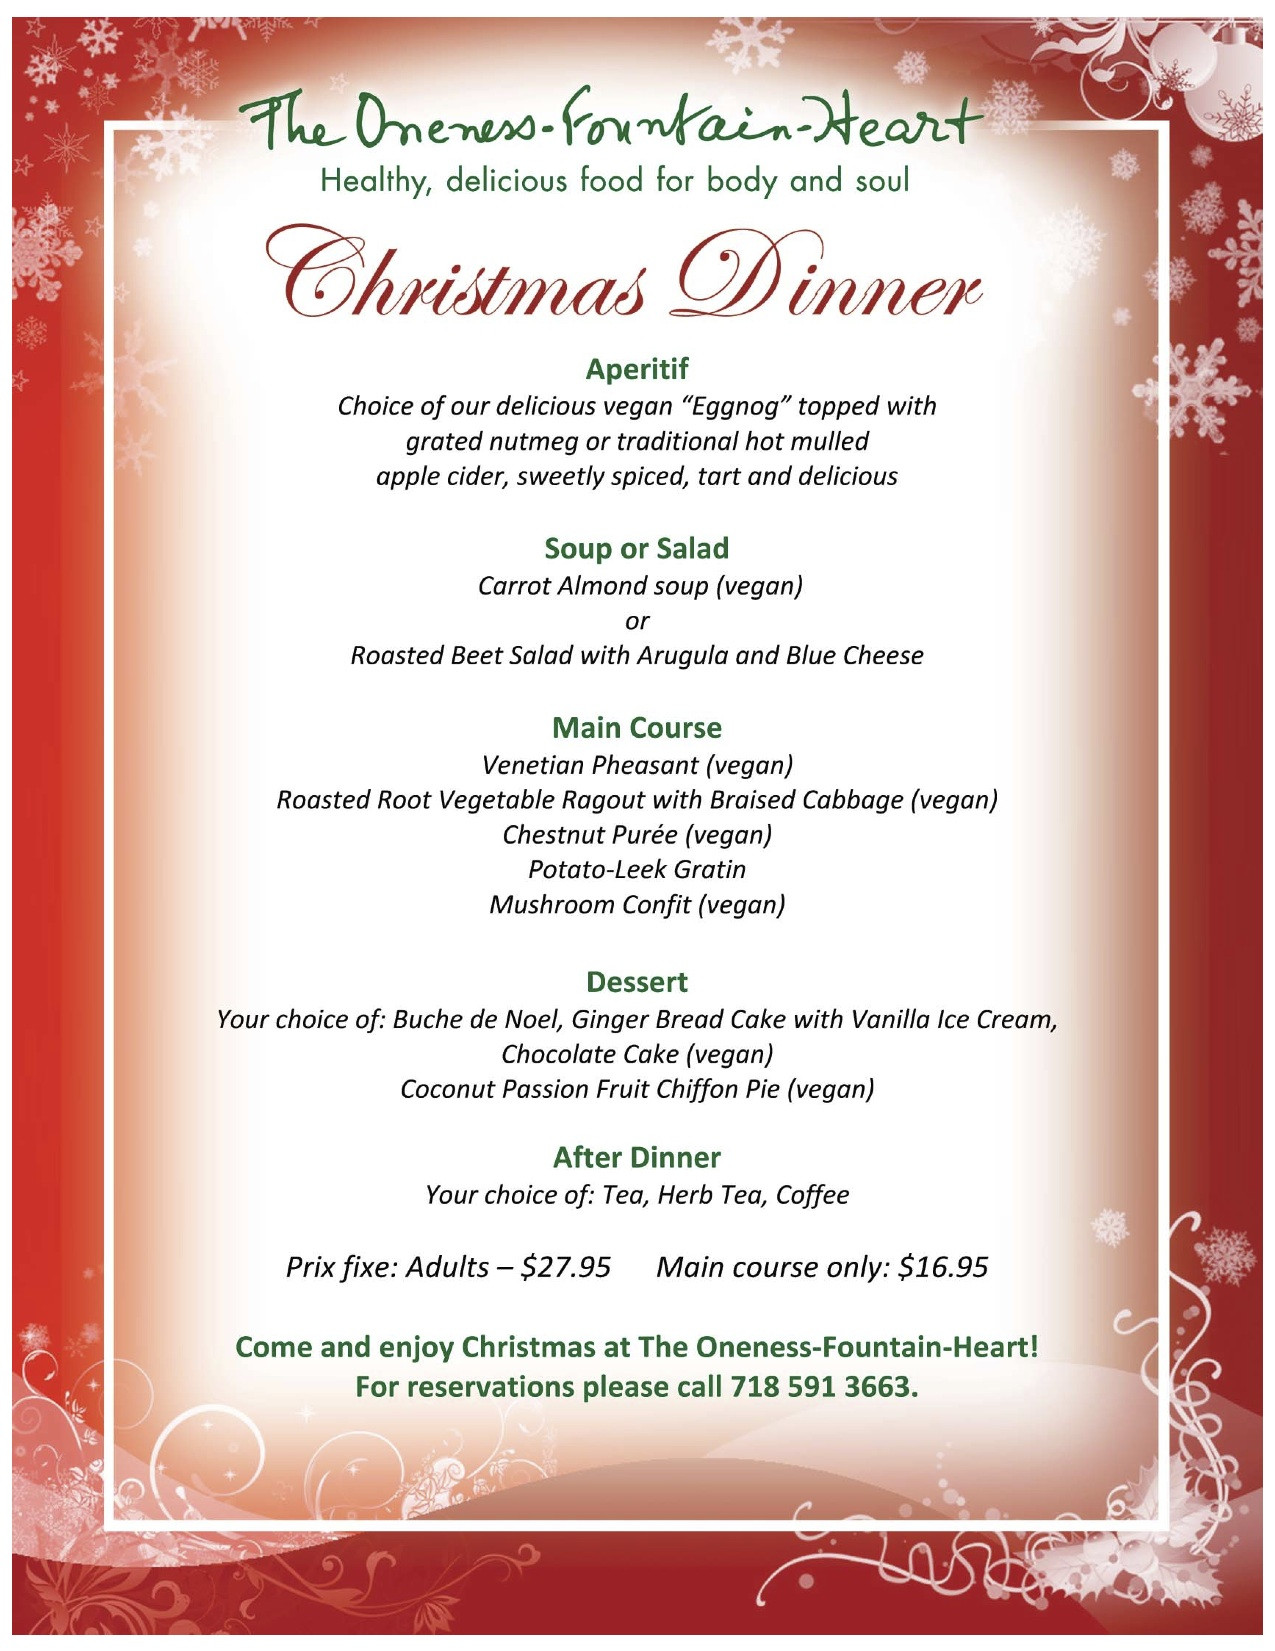 Christmas Dinner Menus  20 Mouth Watering Christmas Dinner Menu